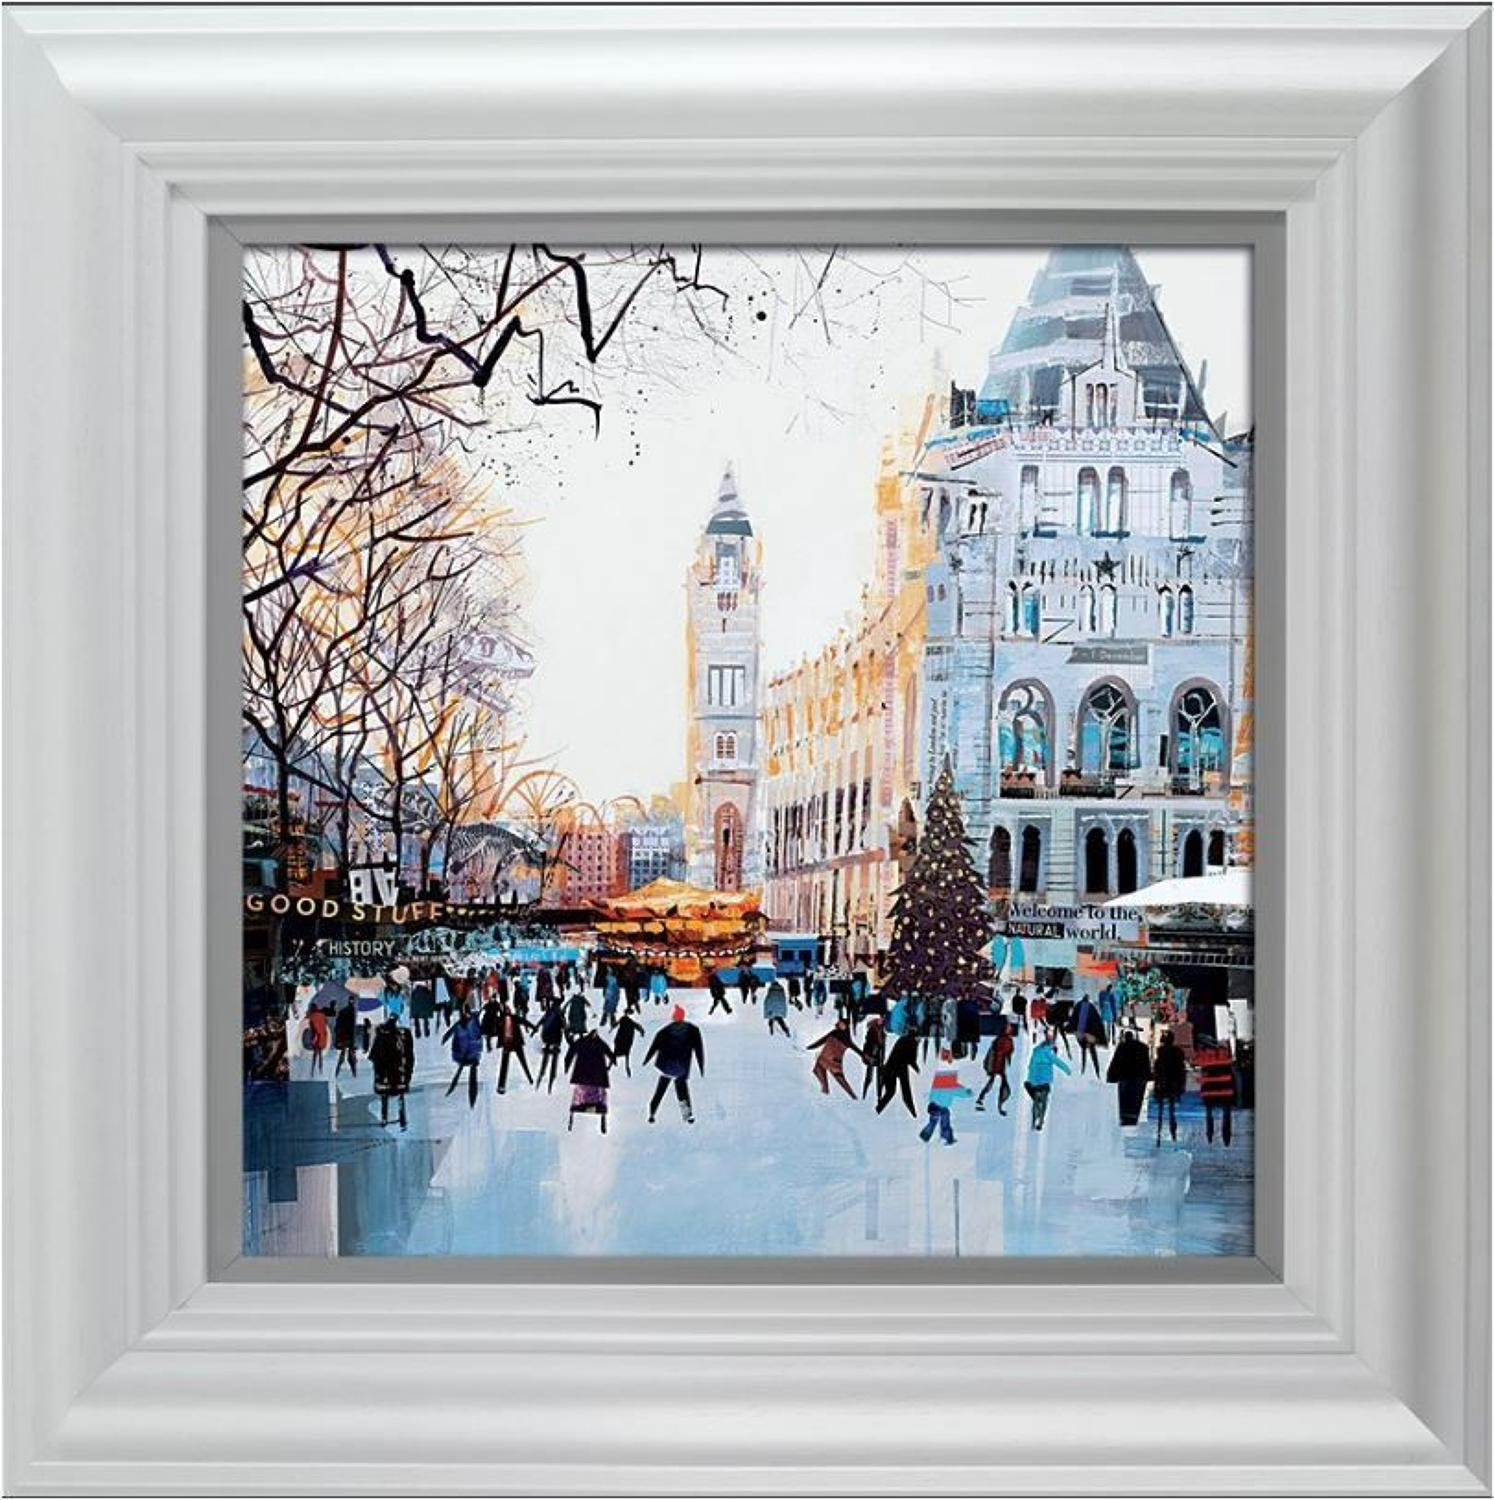 Festive Skaters, Natural History Museum Framed Art by Tom Butler